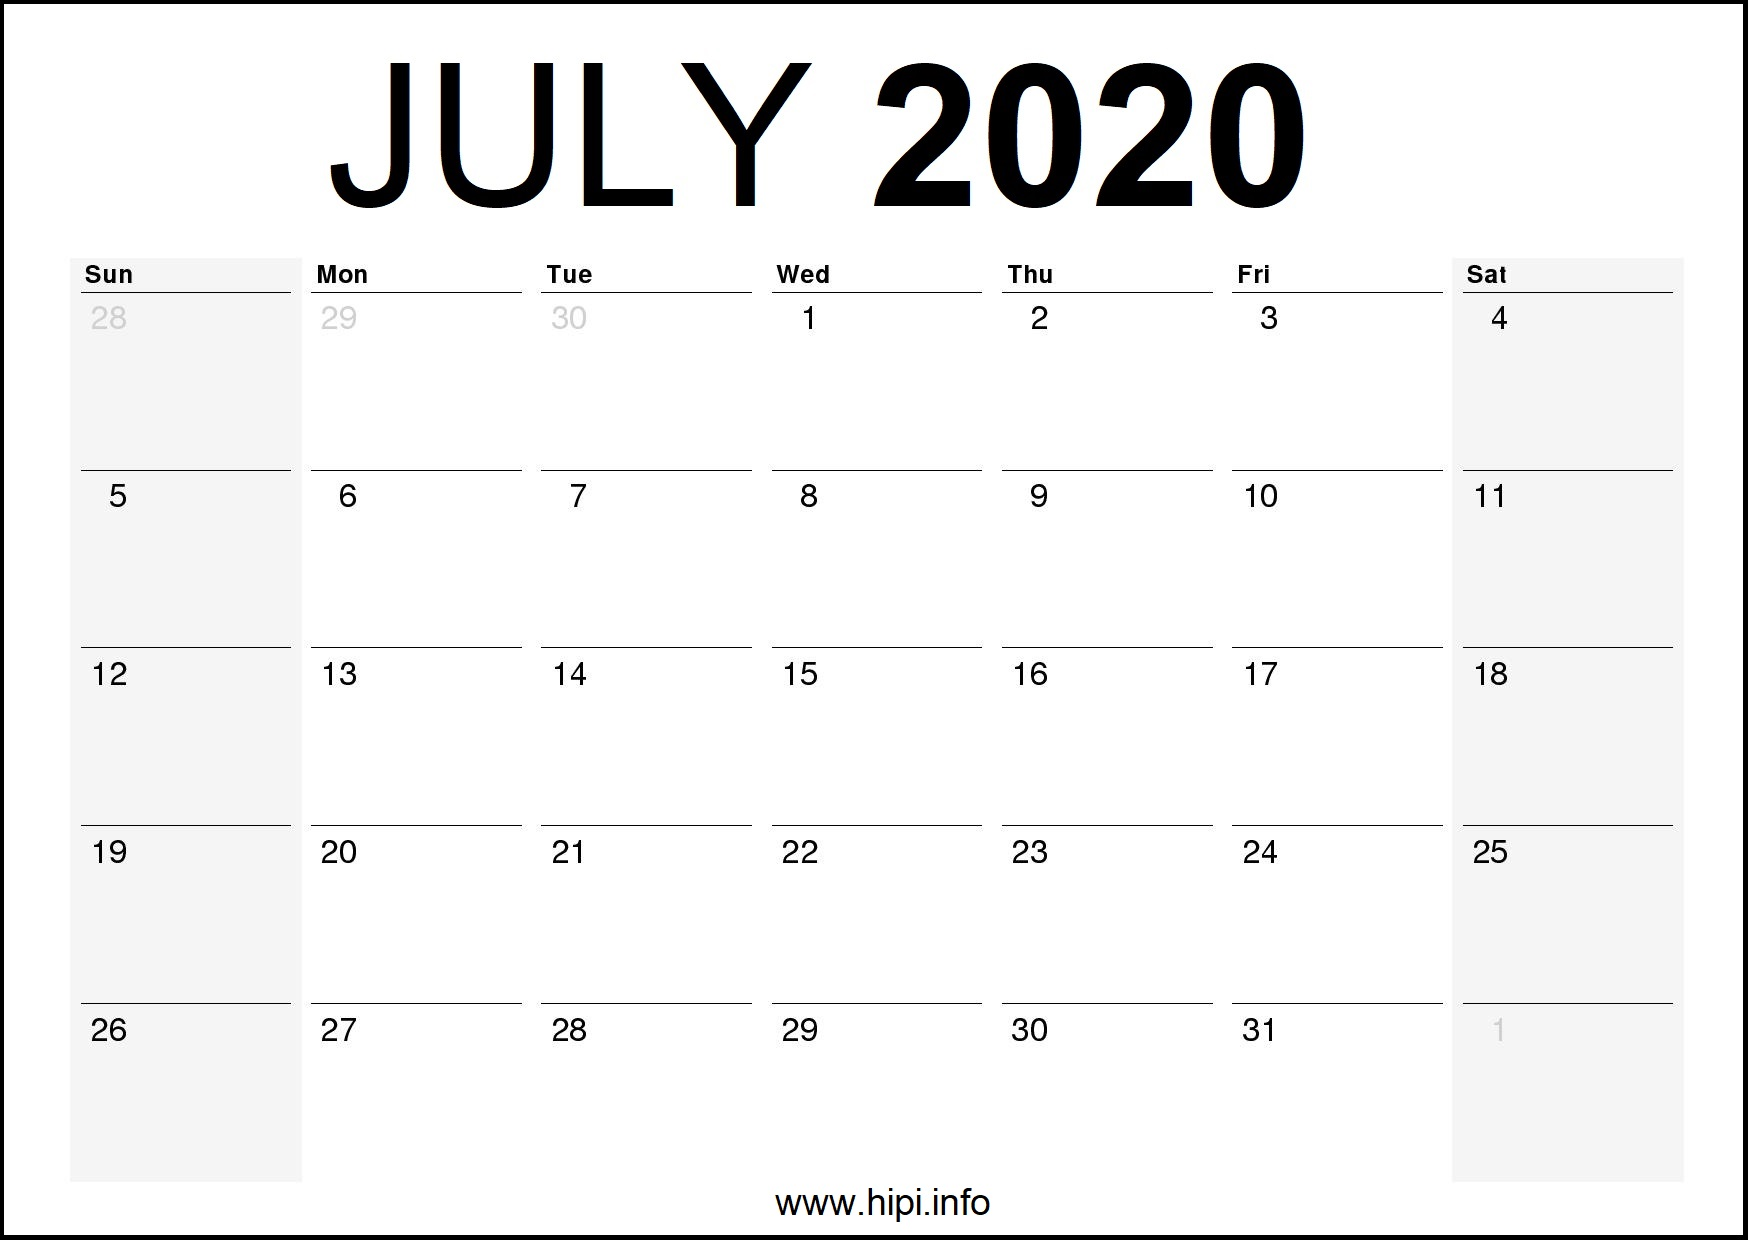 July 2020 Calendar Printable Monthly Free Download Hipi Info